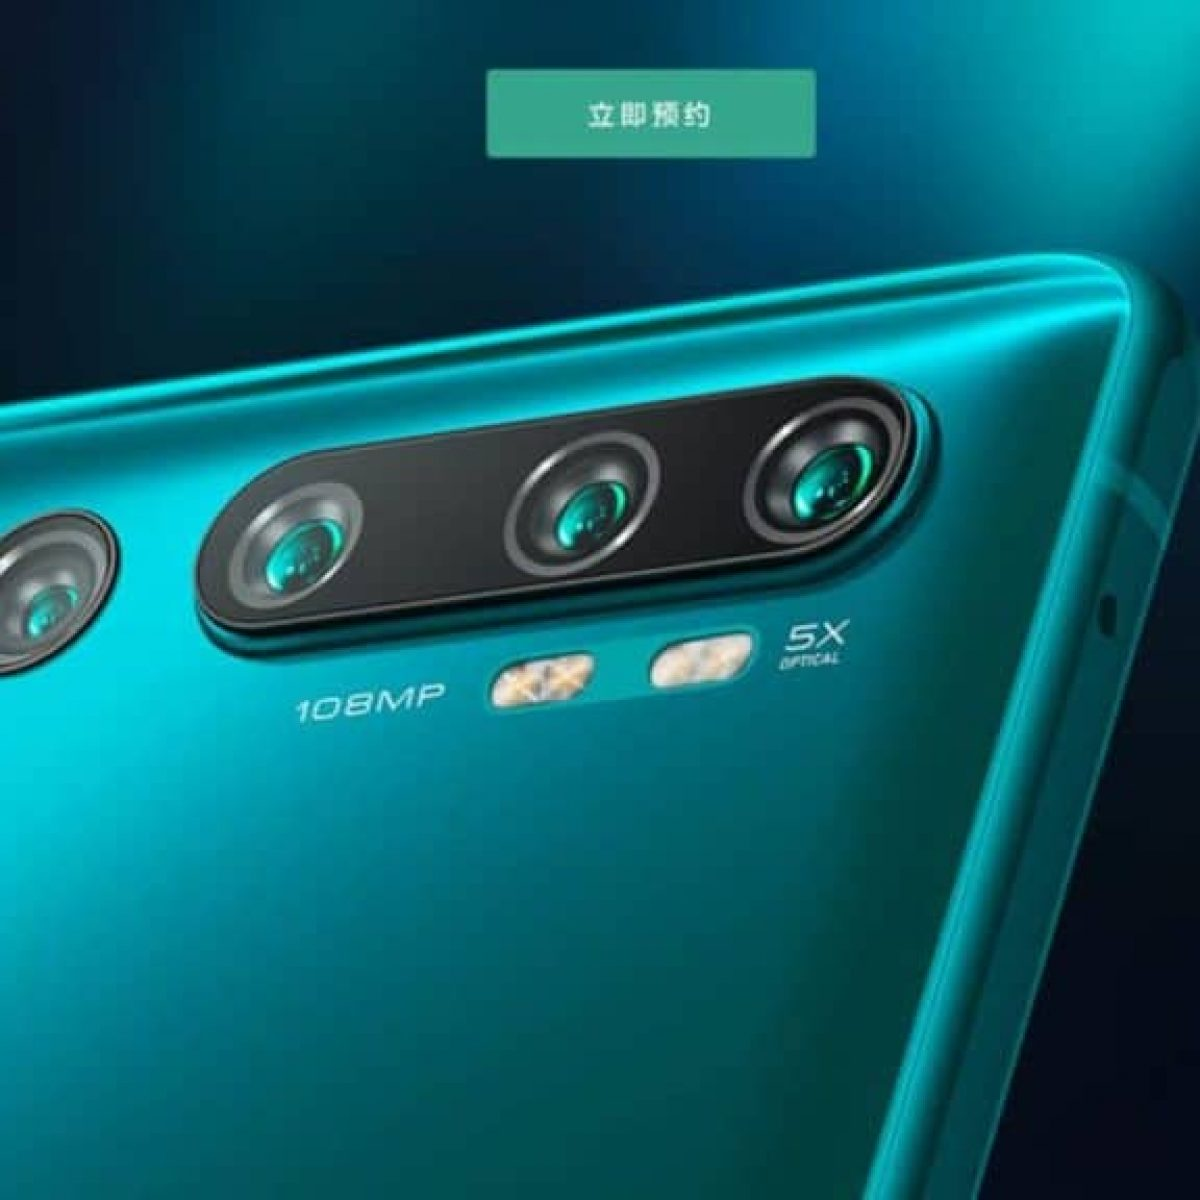 Xiaomi Mi CC9 Pro: Snapdragon 730G Chipset and 108MP Camera